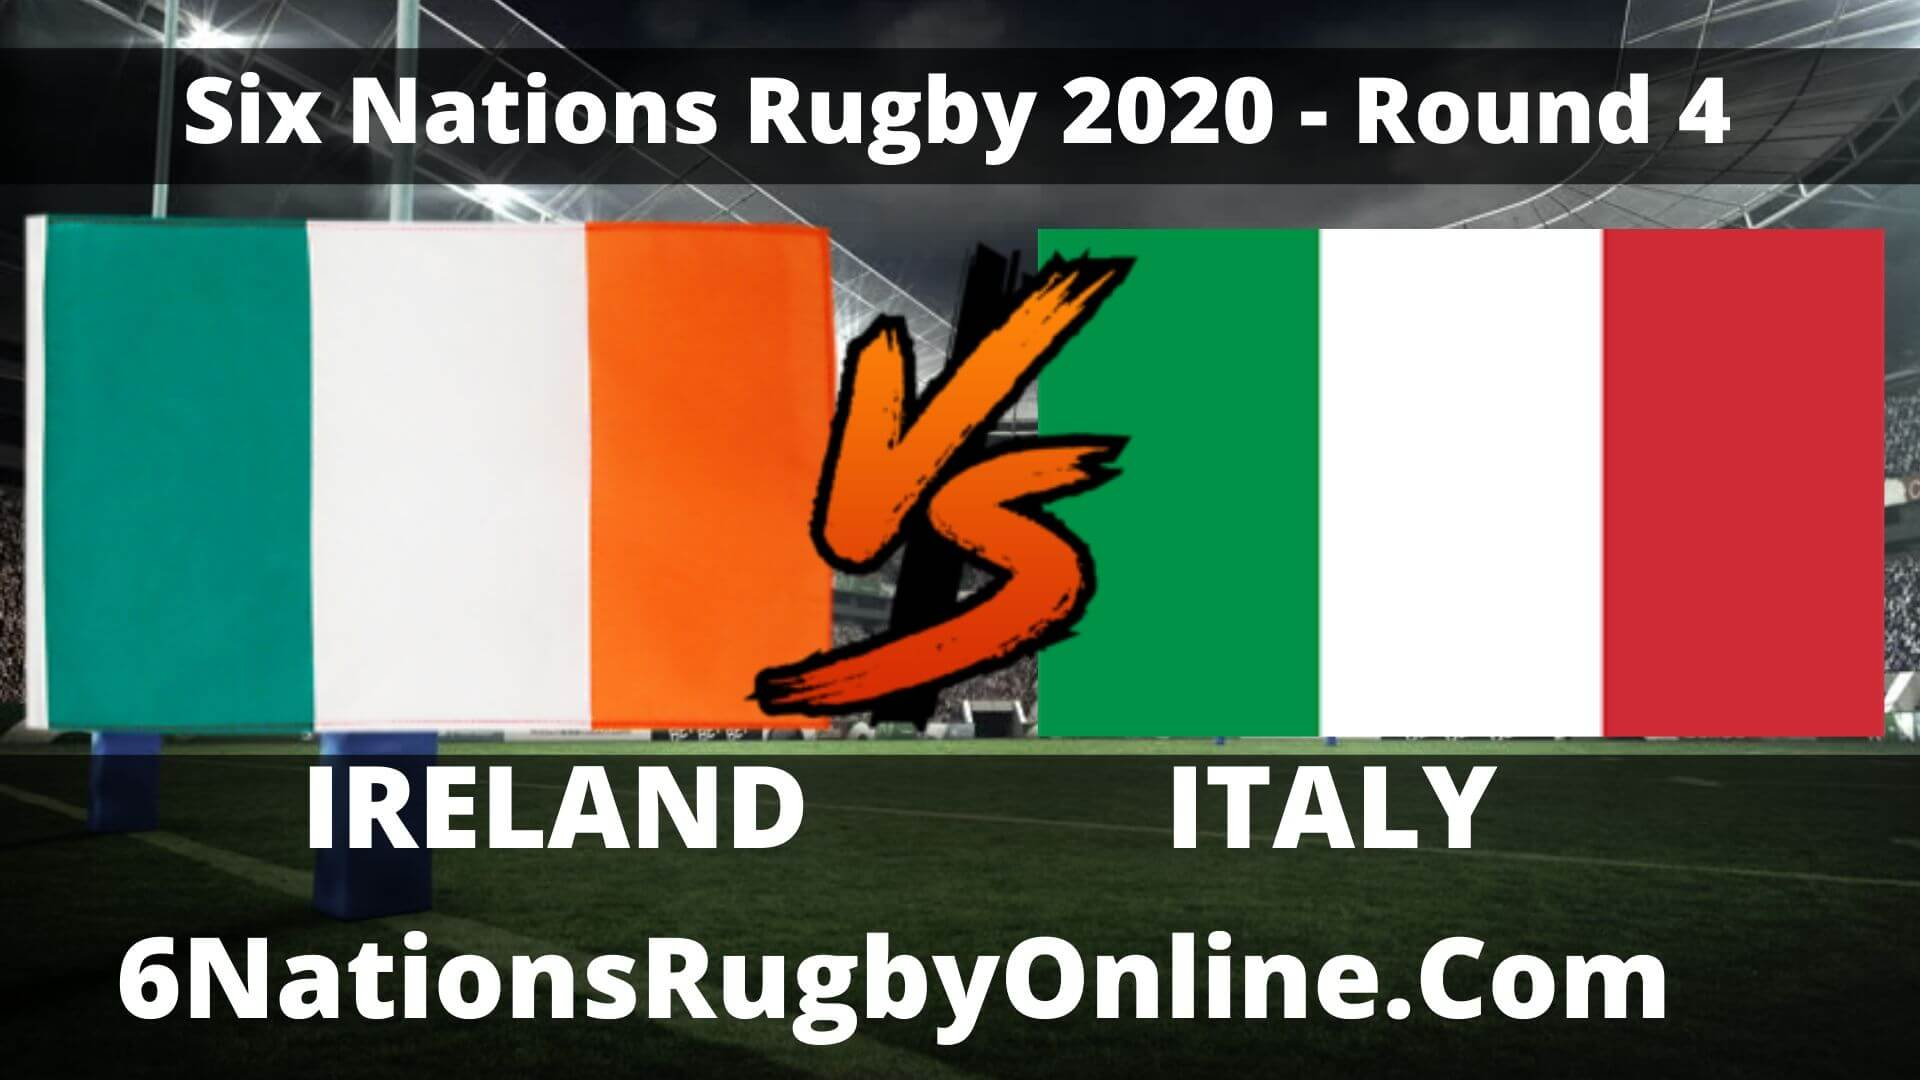 Ireland vs Italy Live Stream 2020 Round 4 | Match Replay